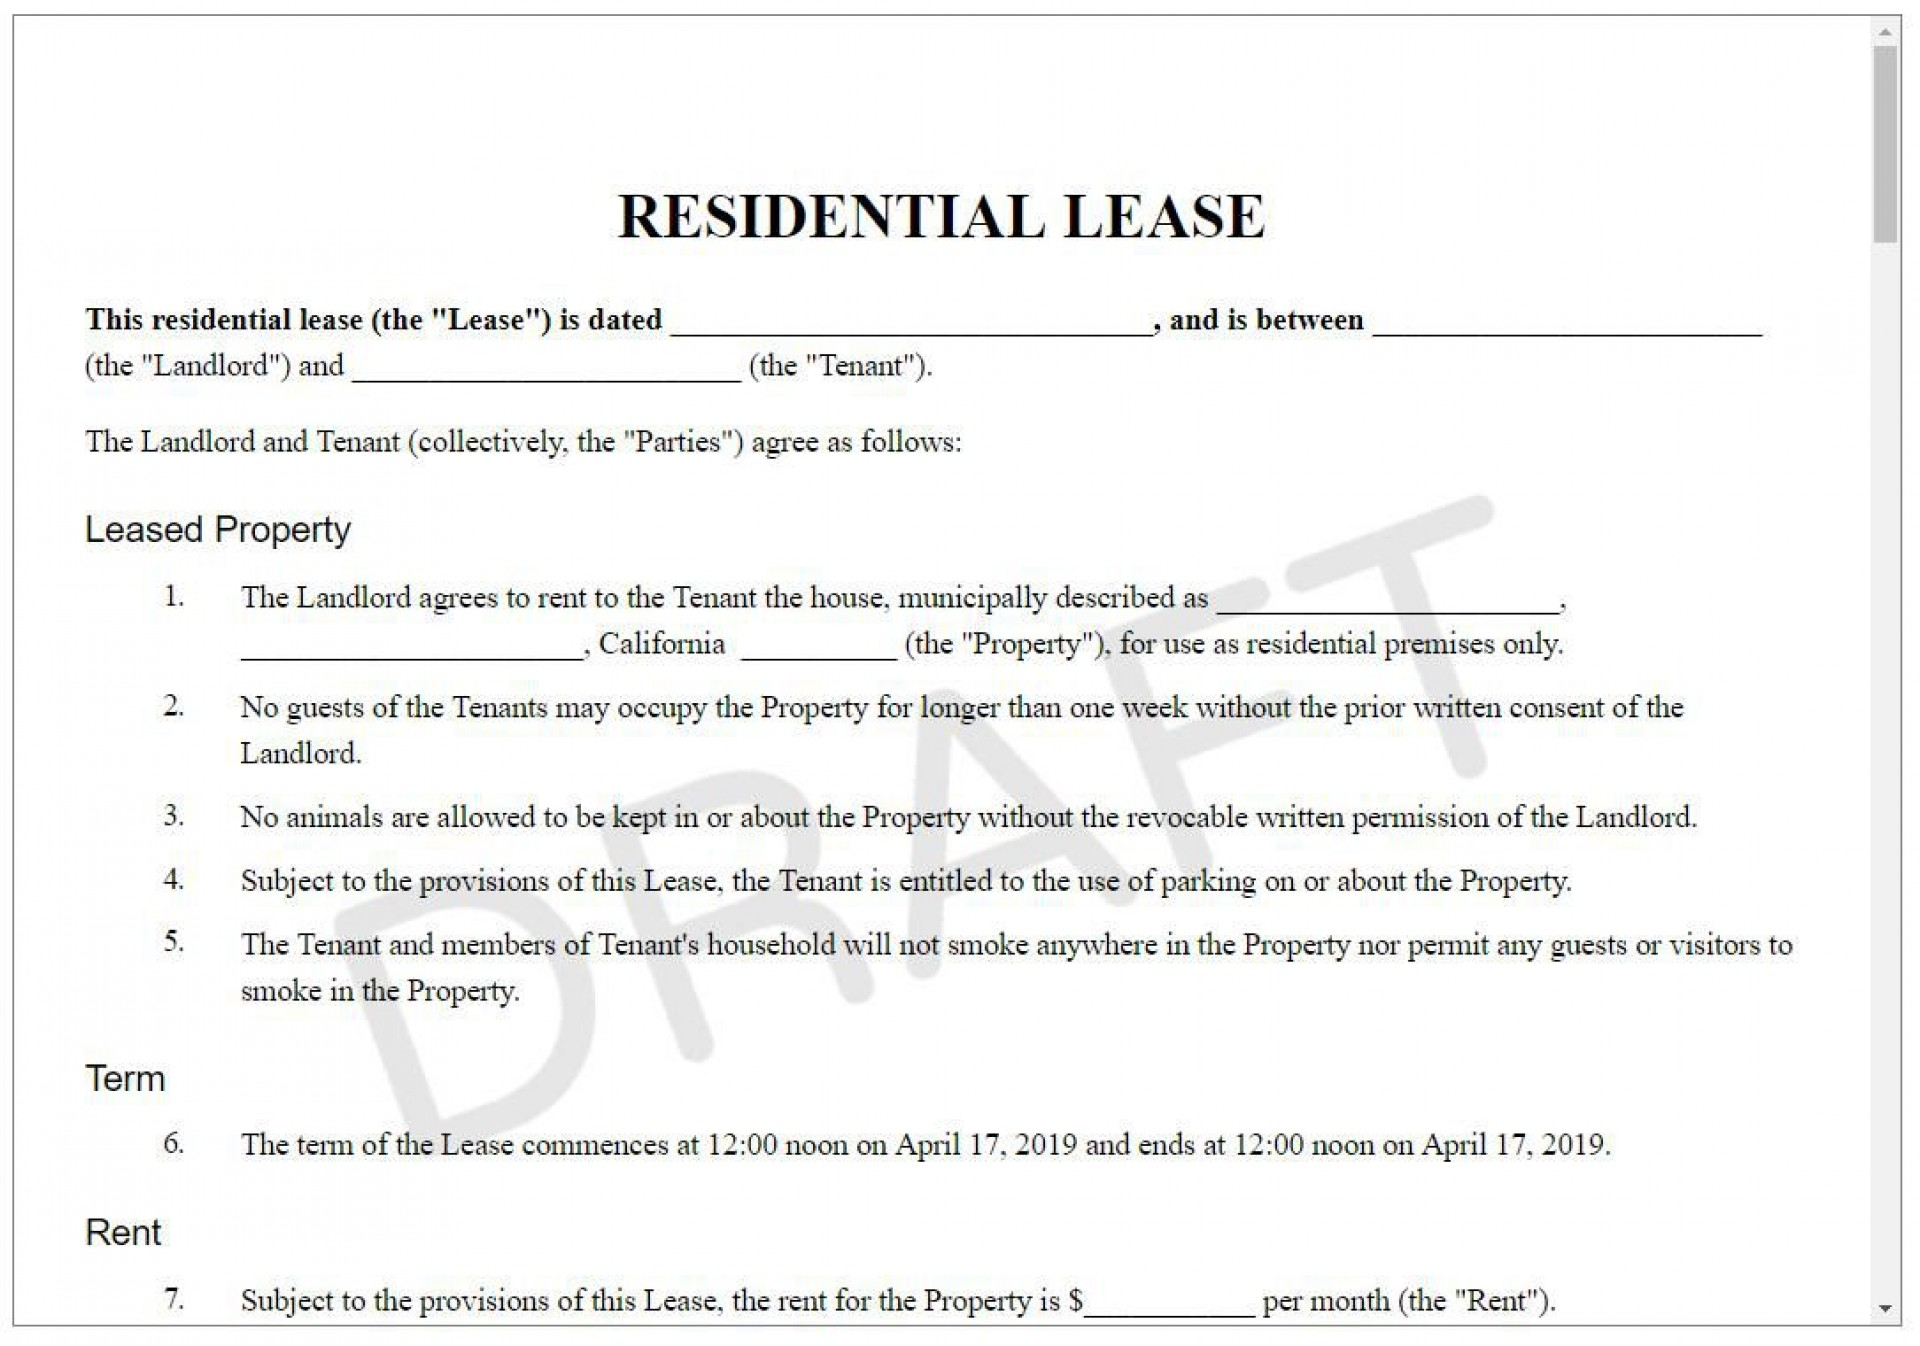 008 Awful Landlord Contract Template Free Example  Rental Simple Flat Resident Tenancy Agreement1920